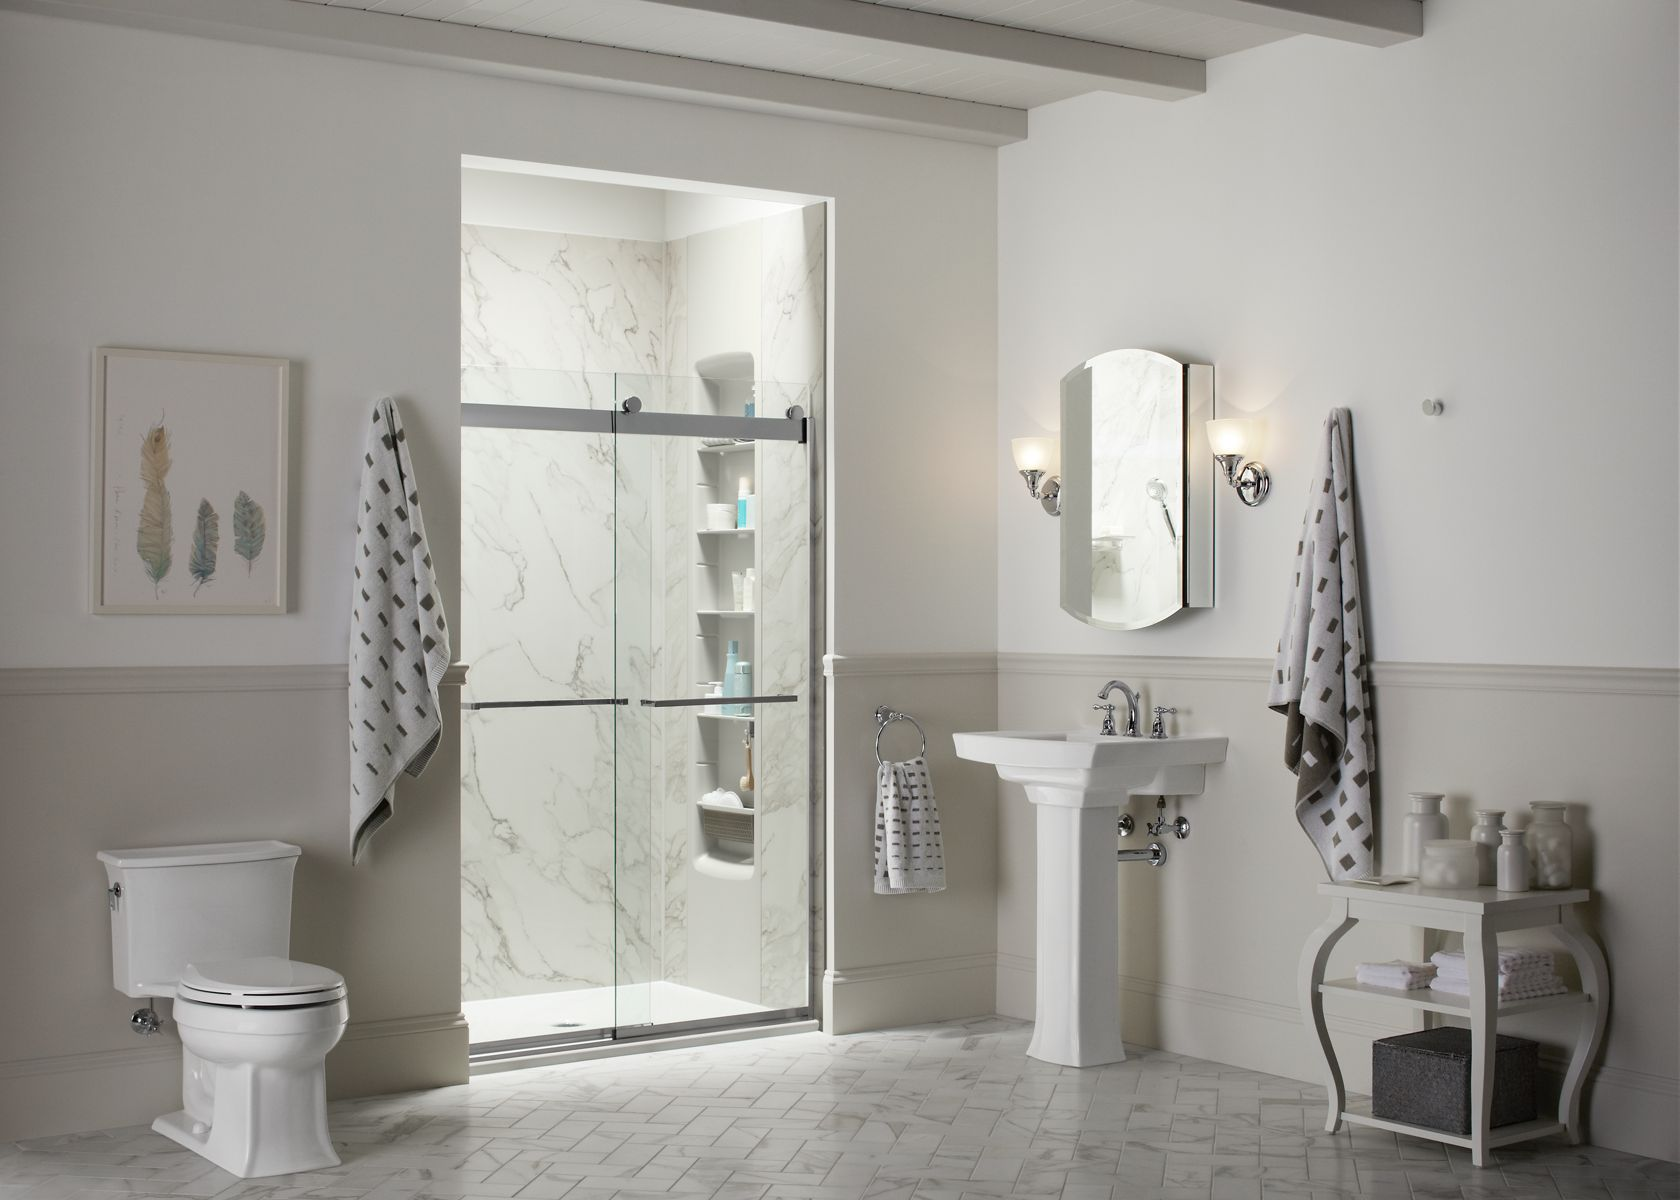 the choreograph collection is a shower system that allows you to design a shower around your needs the shower walls come in a range of colors